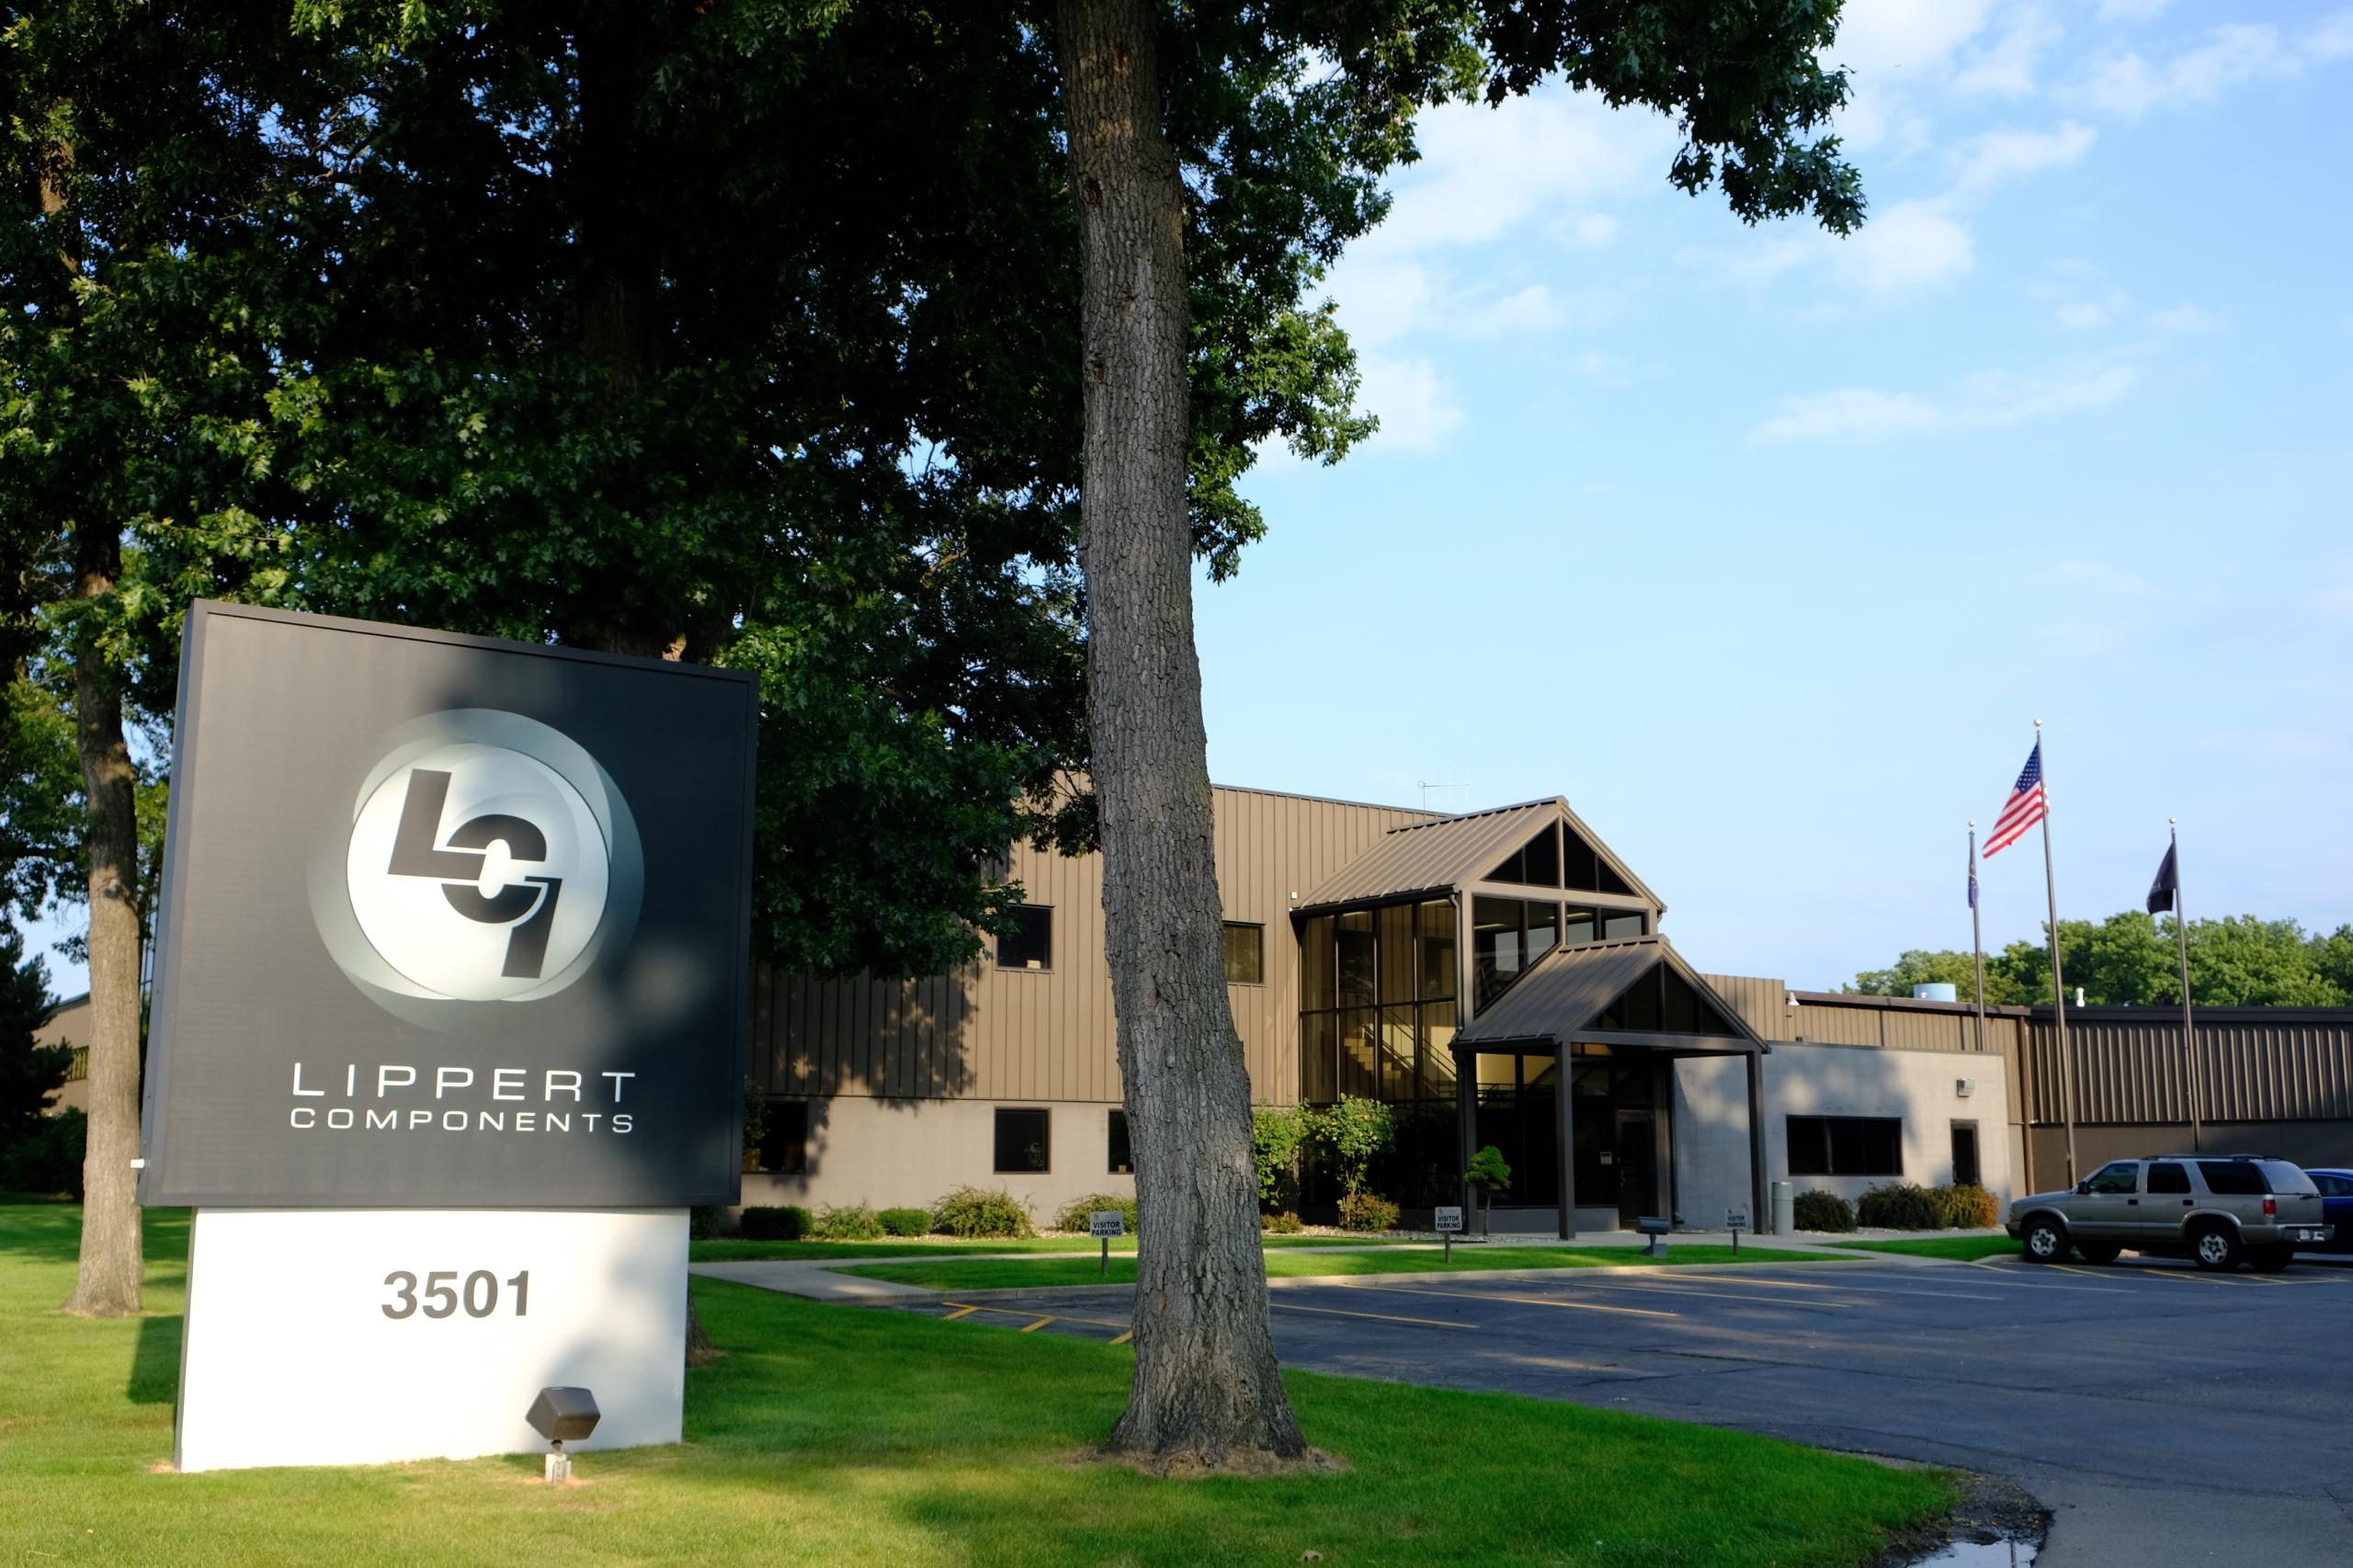 Lippert Components' corporate headquarters in Elkhart, Indiana.